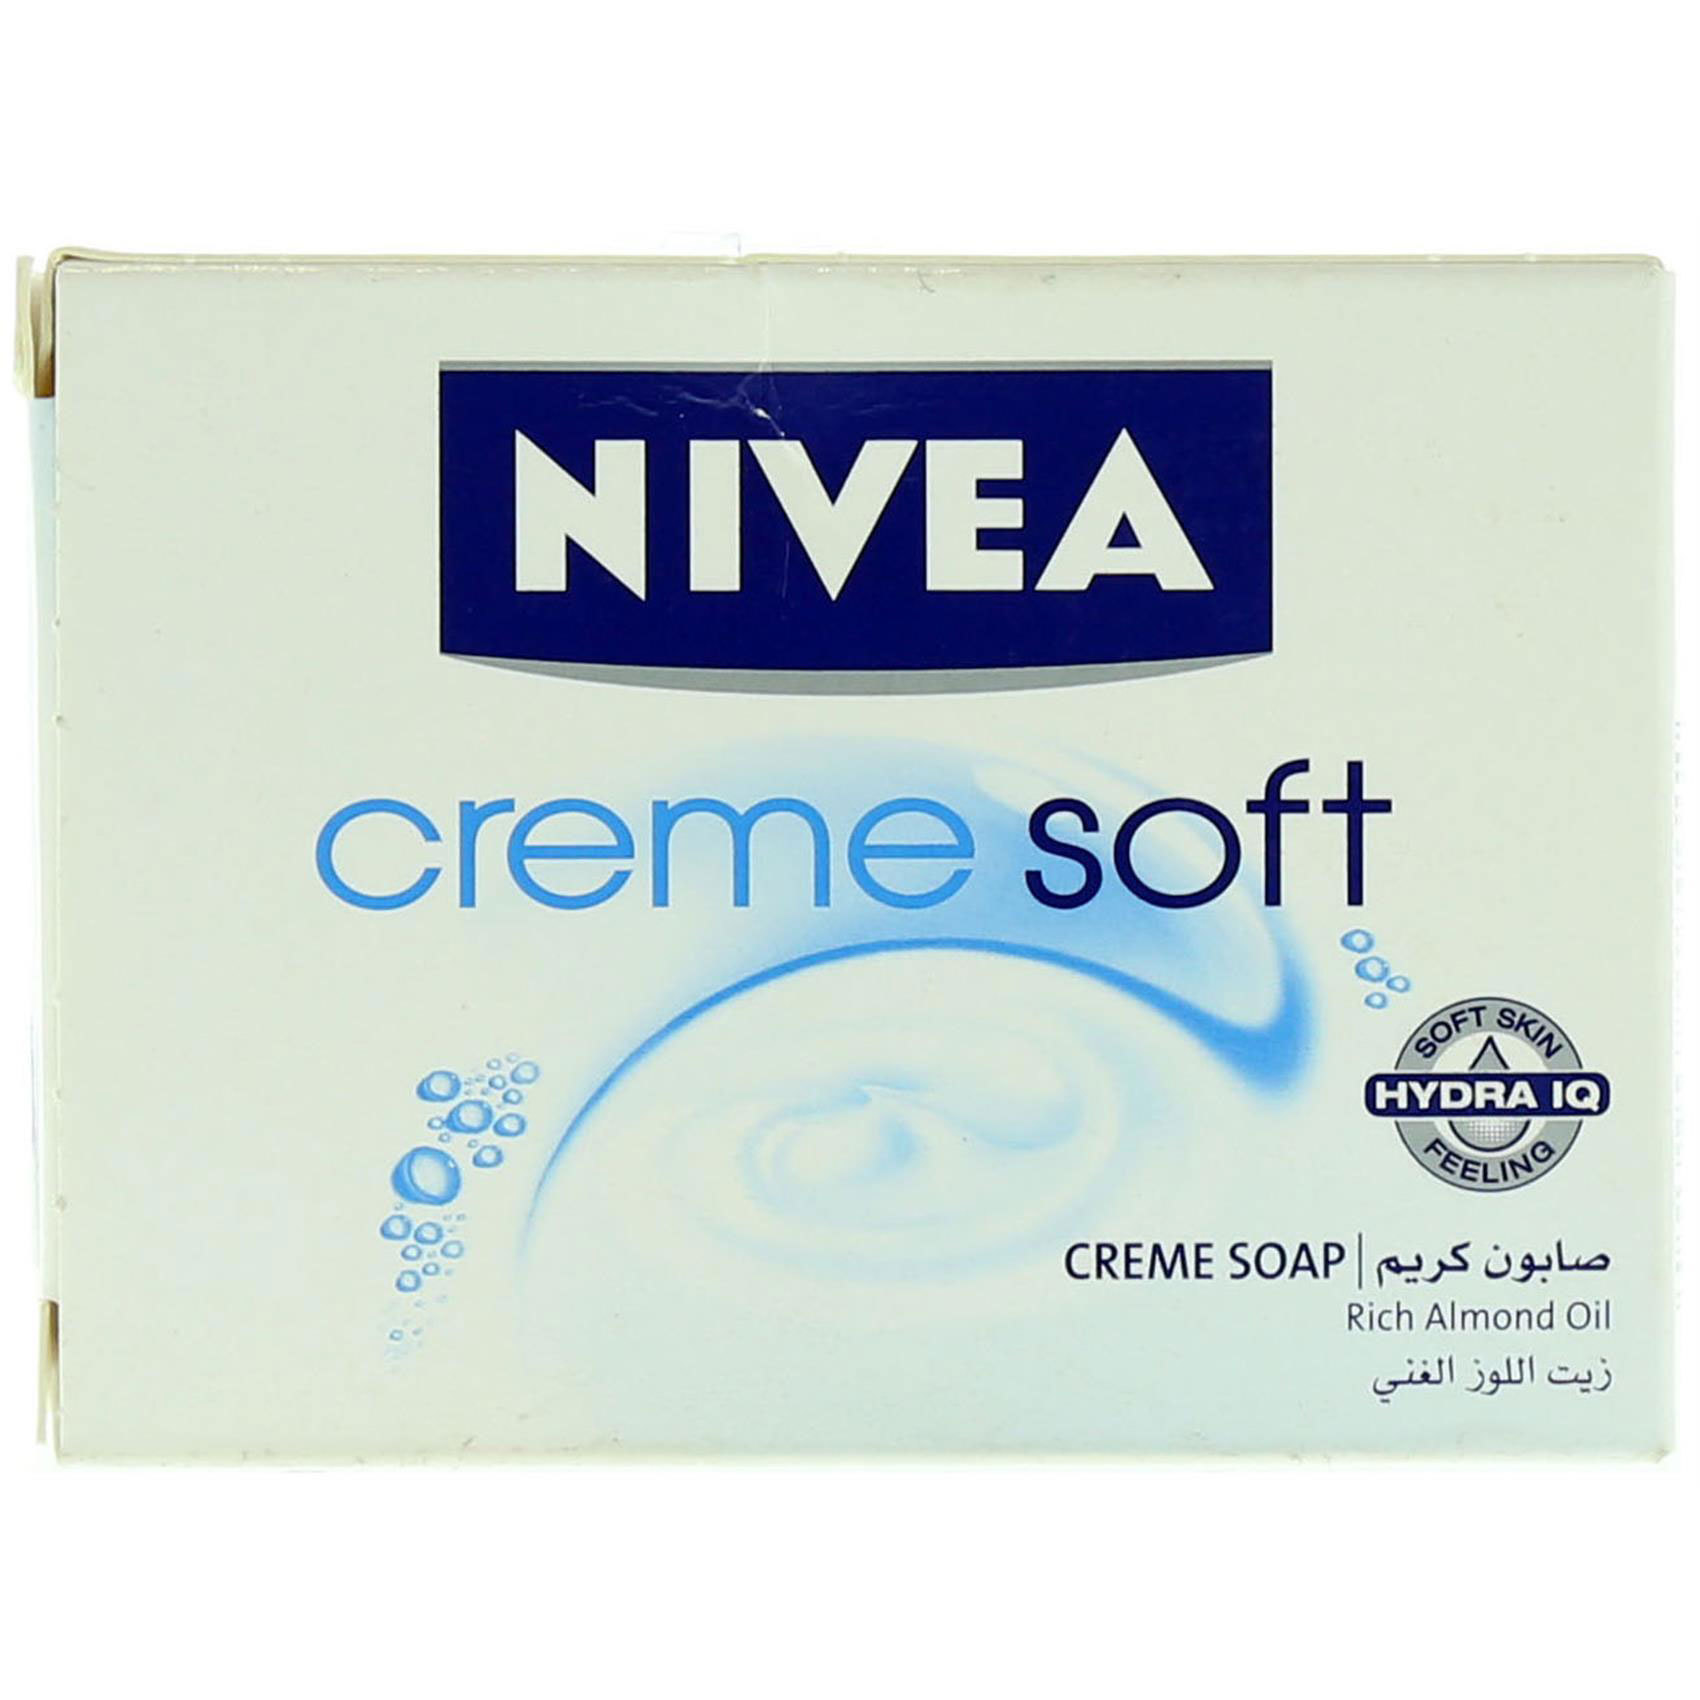 NIVEA CREME SOFT SOAP 100GMS